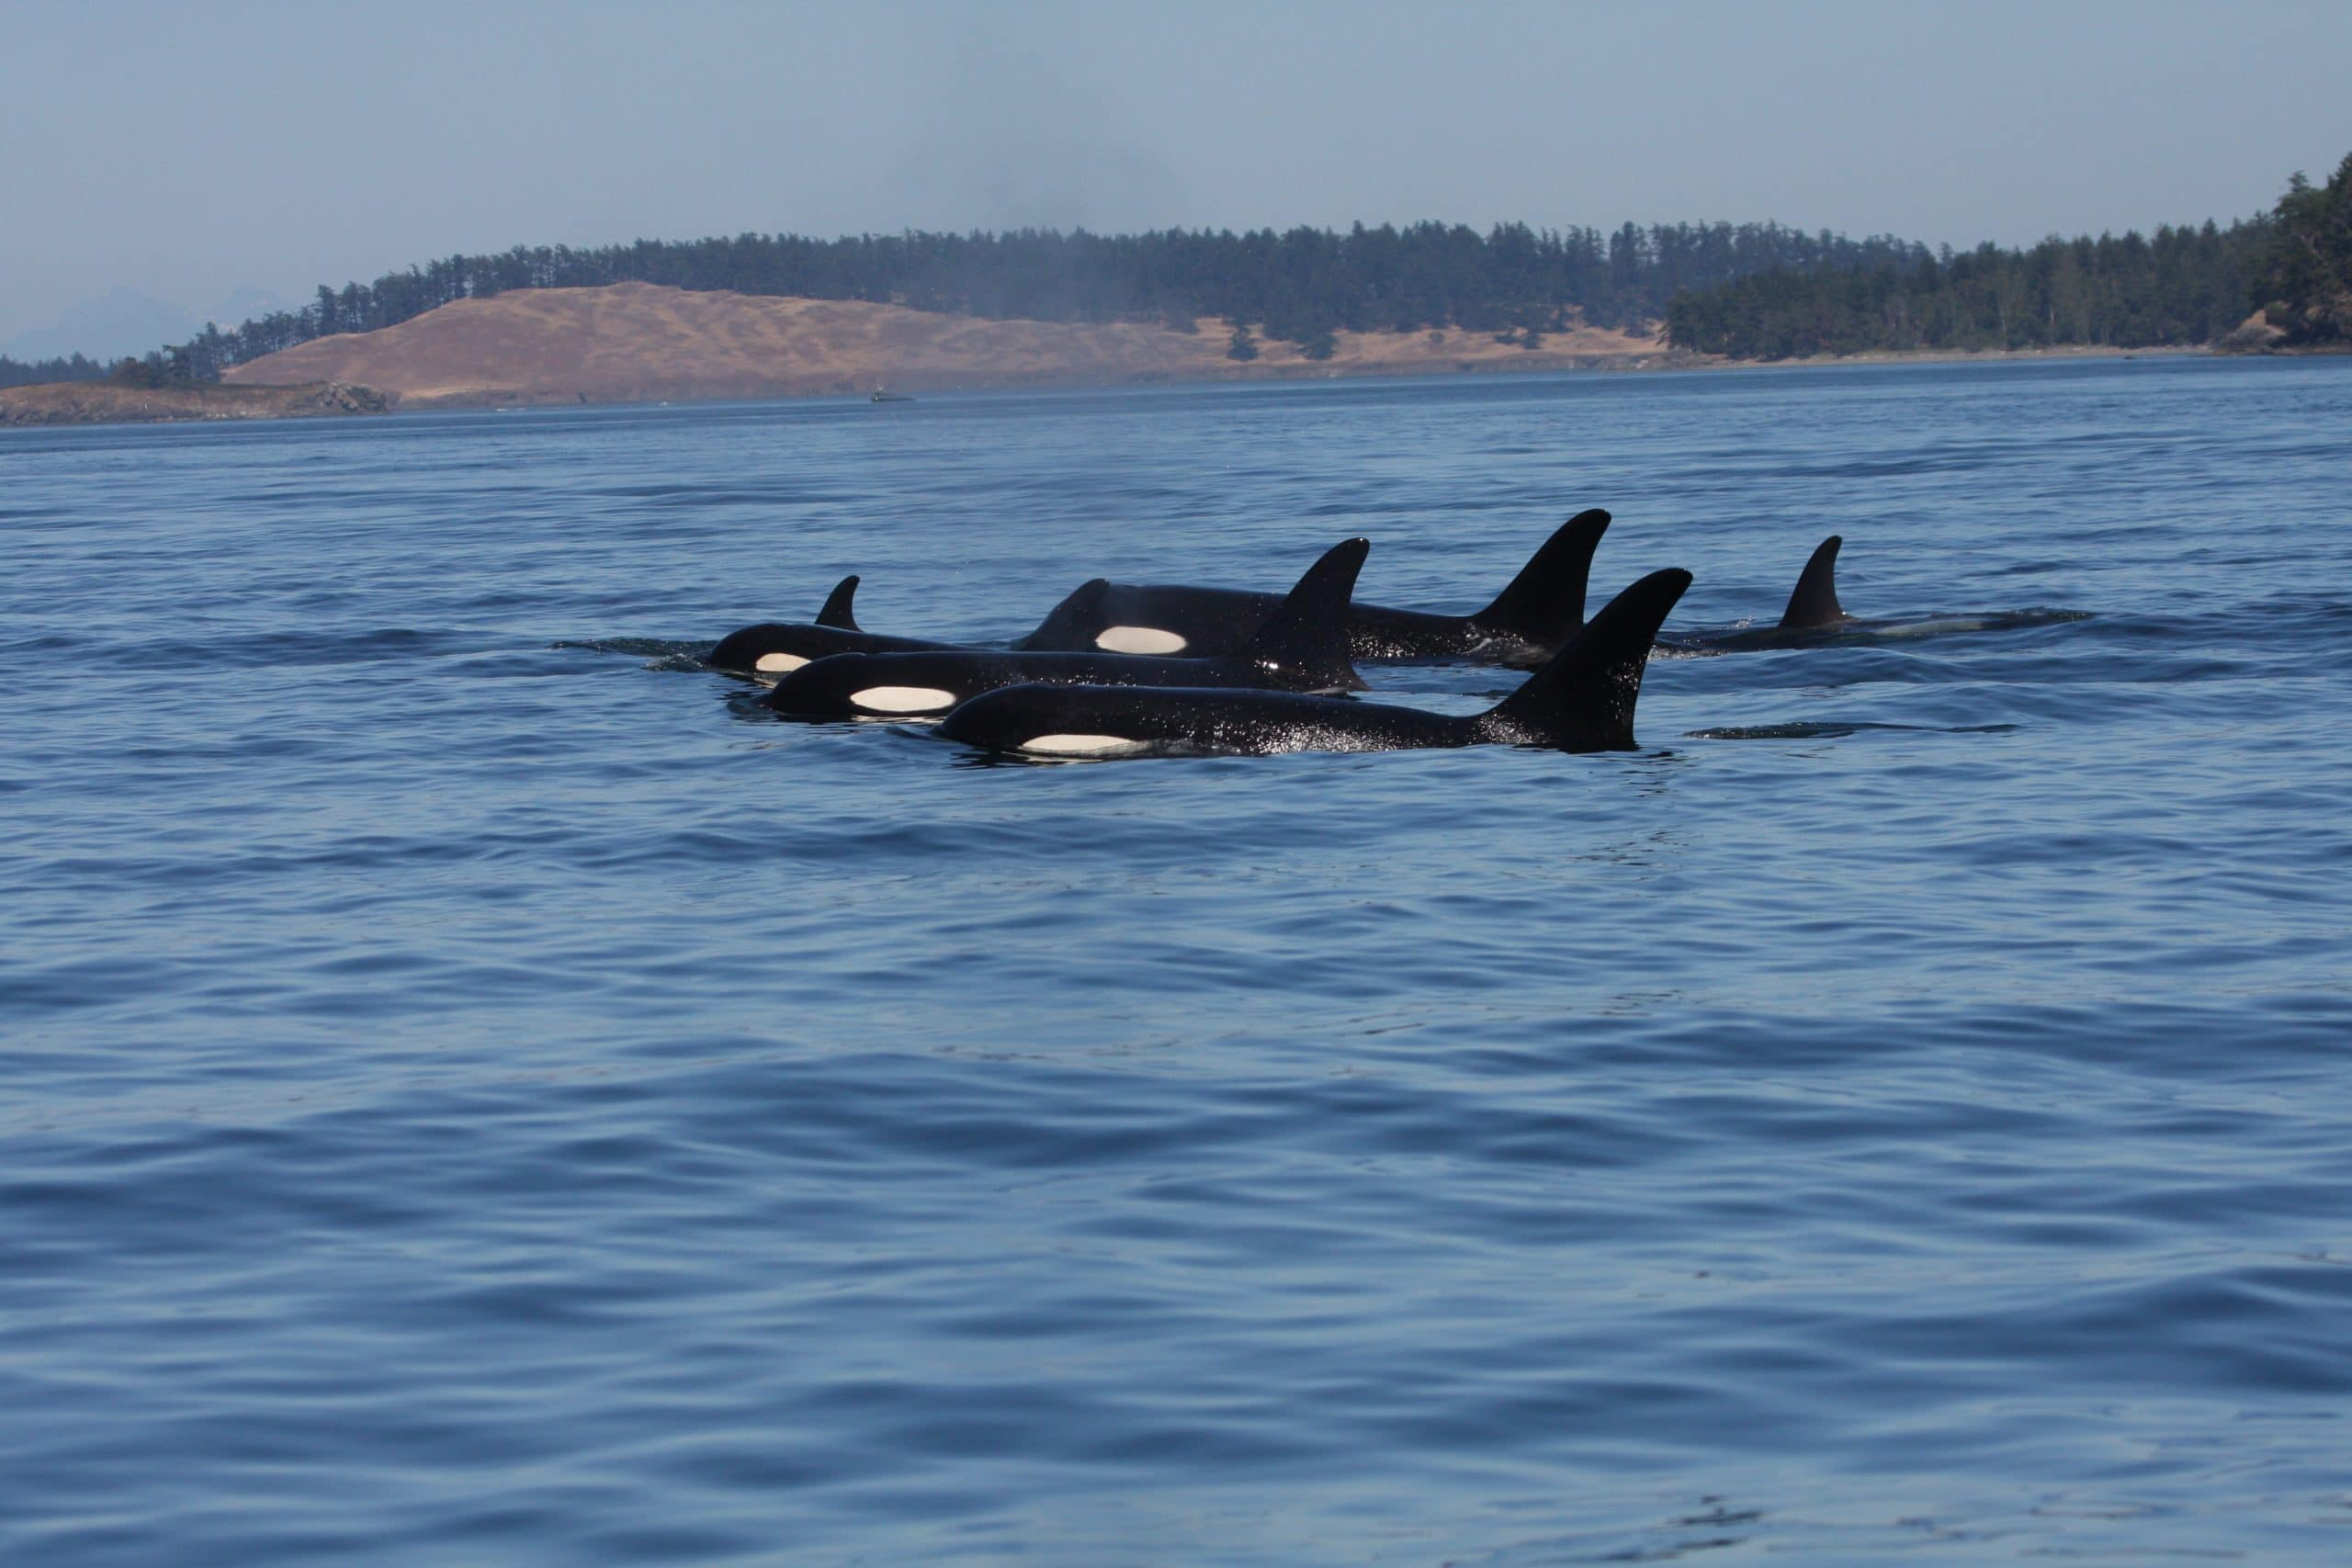 A group of Southern Resident orcas